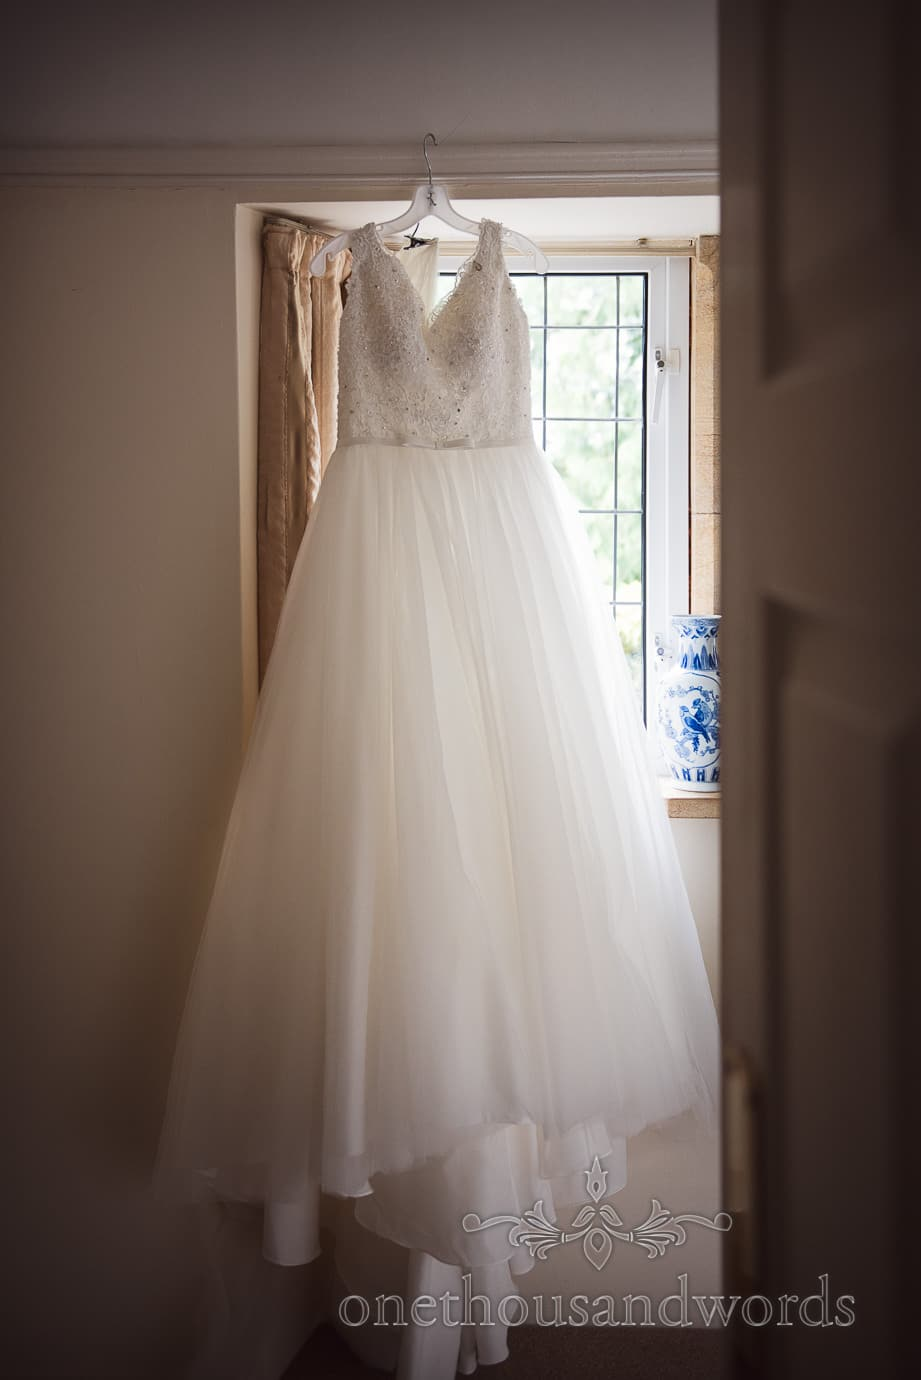 White A-line wedding dress with diamanté detail and appliqué bodice